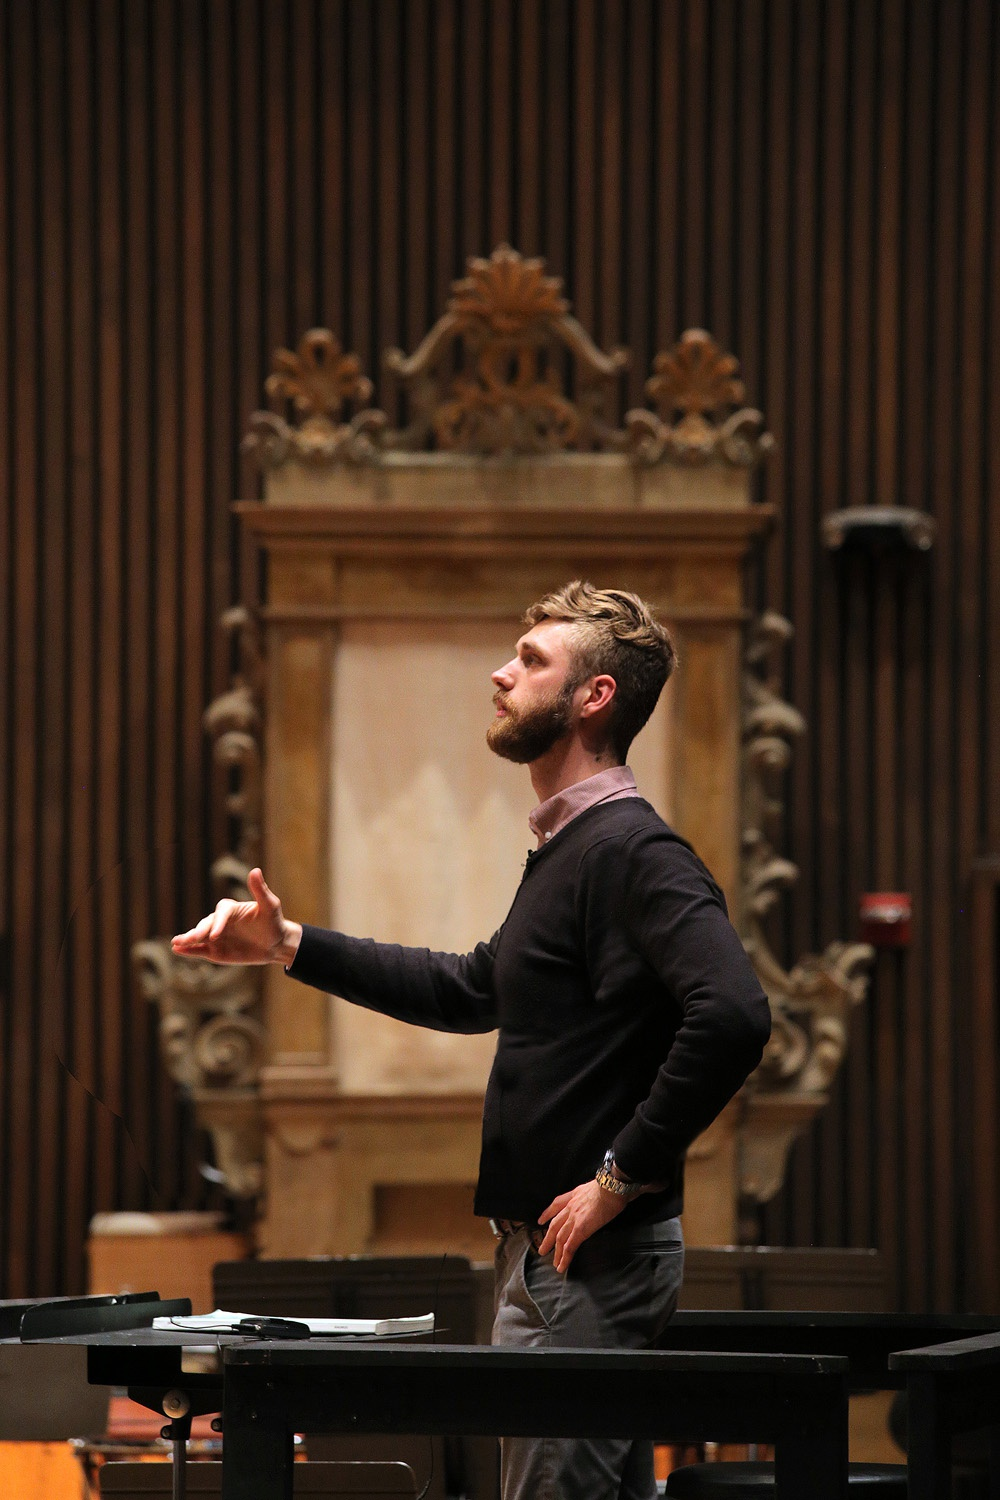 s17-ericA Eric Choate, Assistant Conductor,  BCCO Spring Concert,  Hertz Hall,  Berkeley, California, 2017